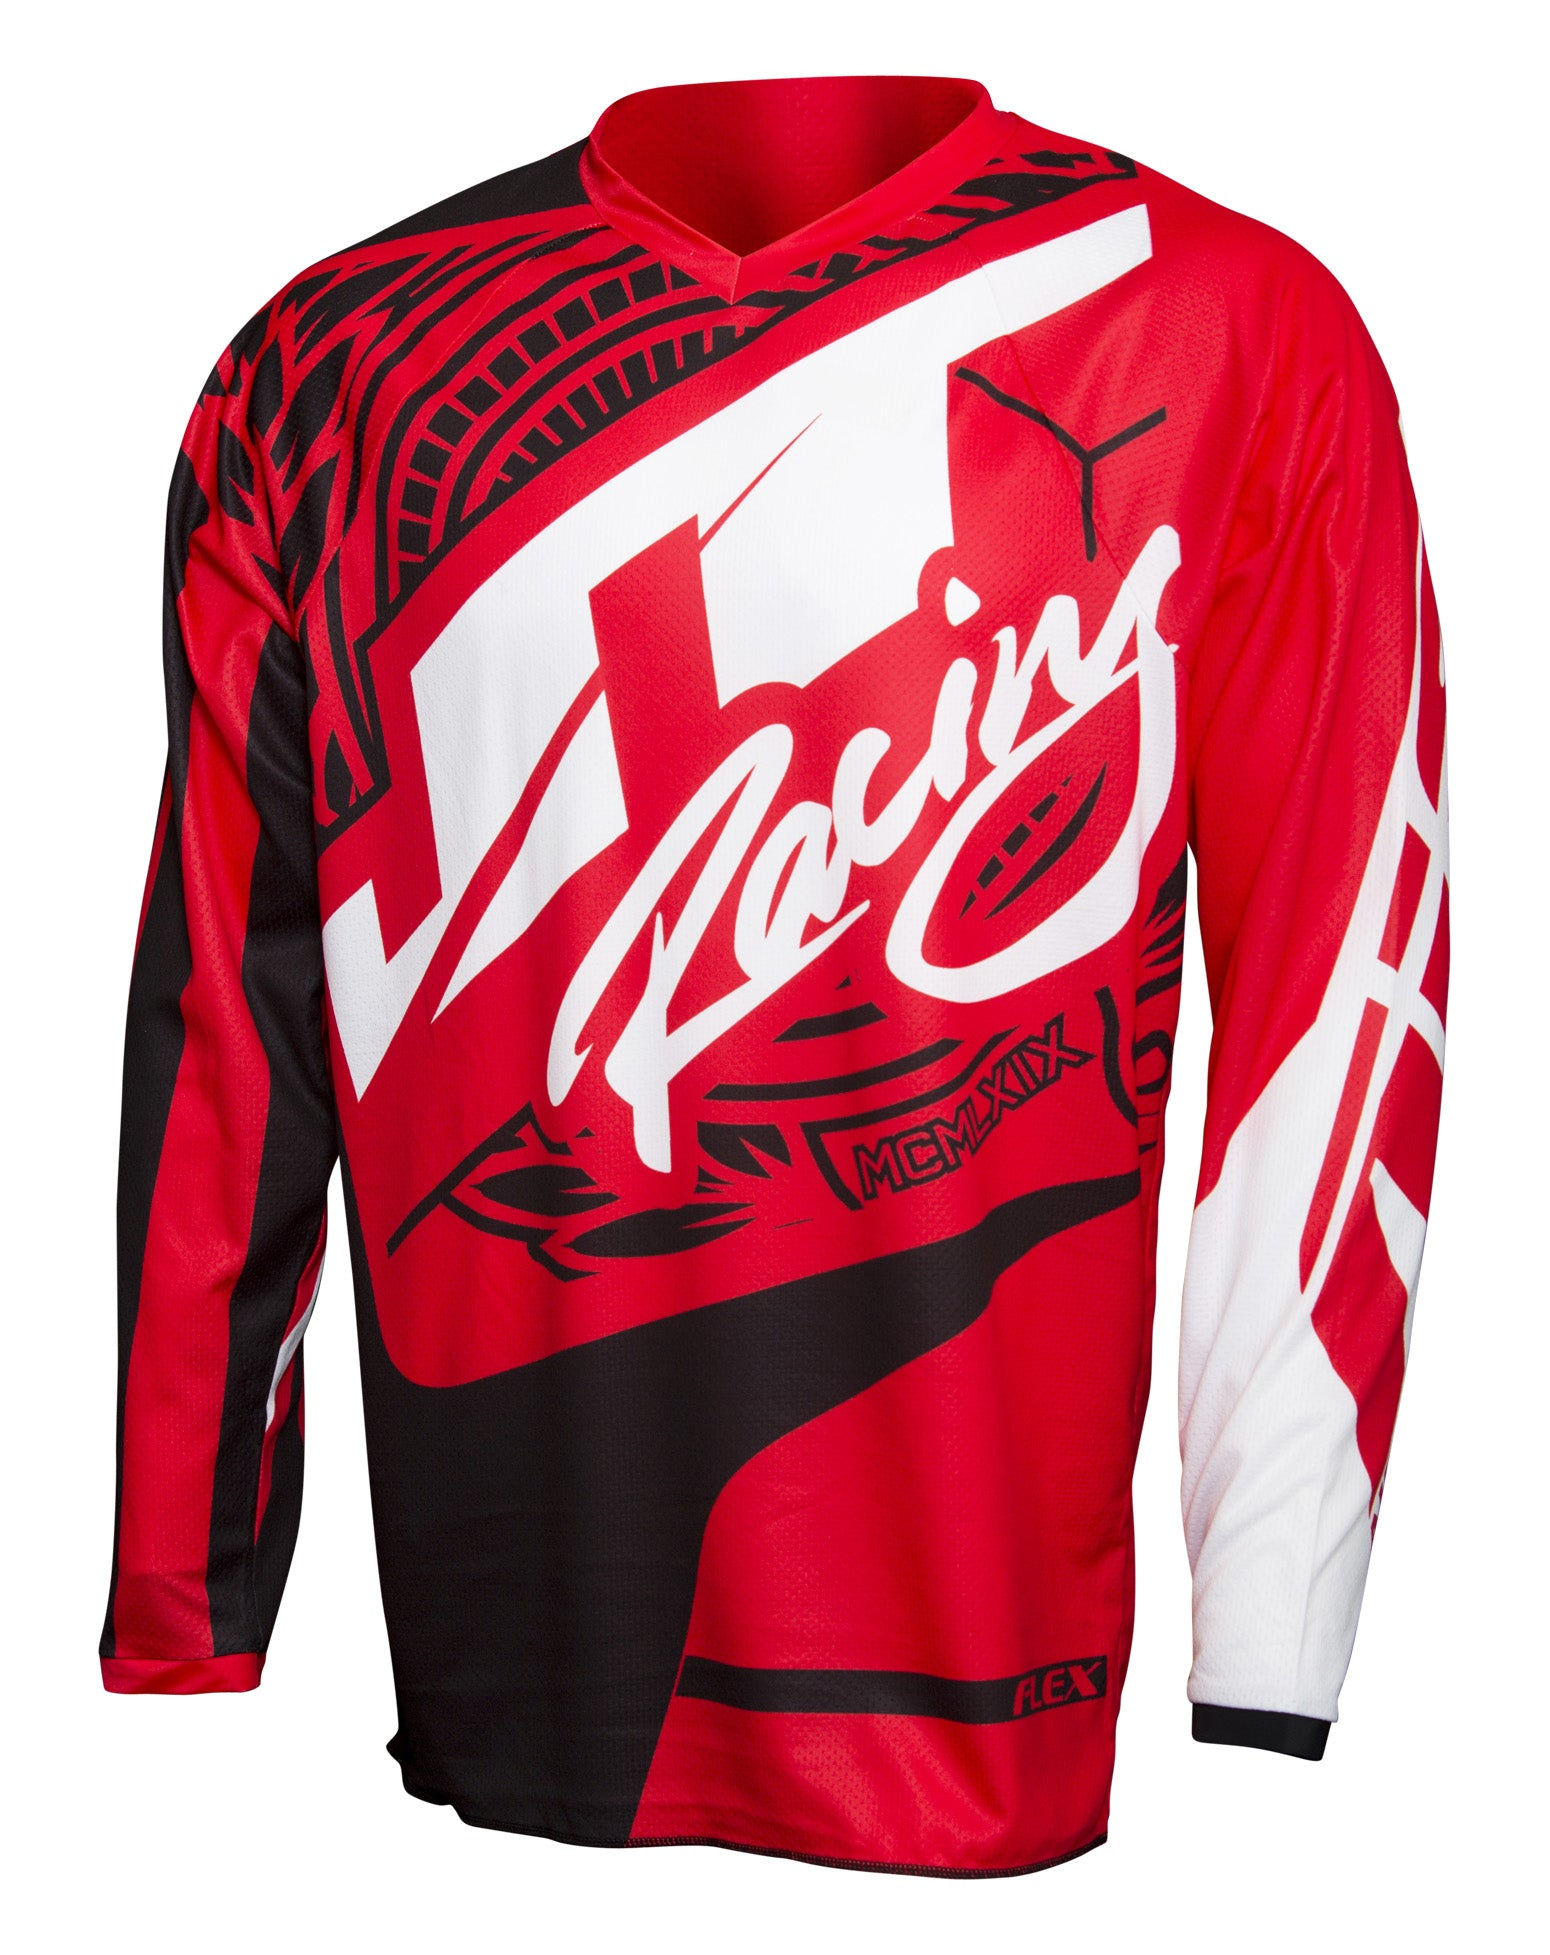 JT RACING USA Flex-Victory Jersey, Red/Black